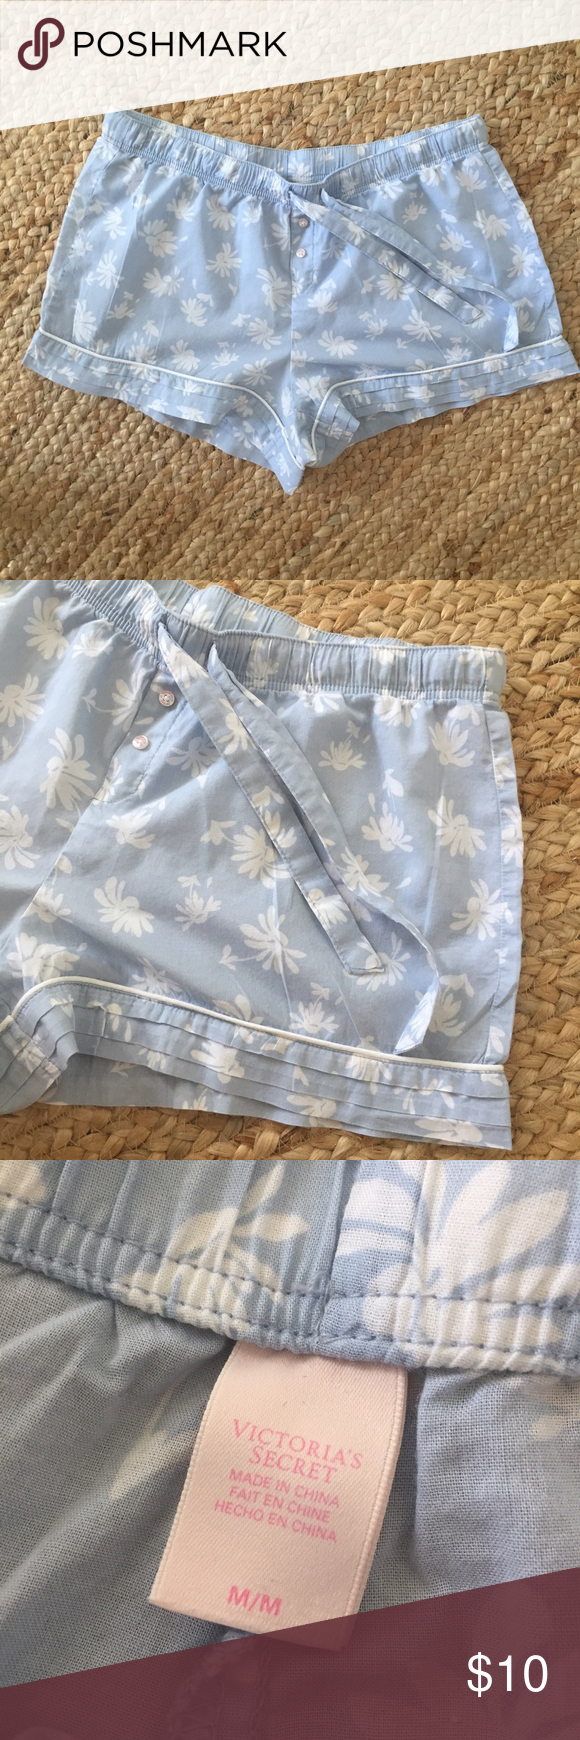 Victoria's Secret Boxer Shorts So sweet and so comfy! Lovely Carolina blue cotton boxer shorts by Victoria's Secret. Worn fewer than five times; in excellent condition. Drawstring waist and pretty Pintuck detailing along hem. Victoria's Secret Intimates & Sleepwear Pajamas